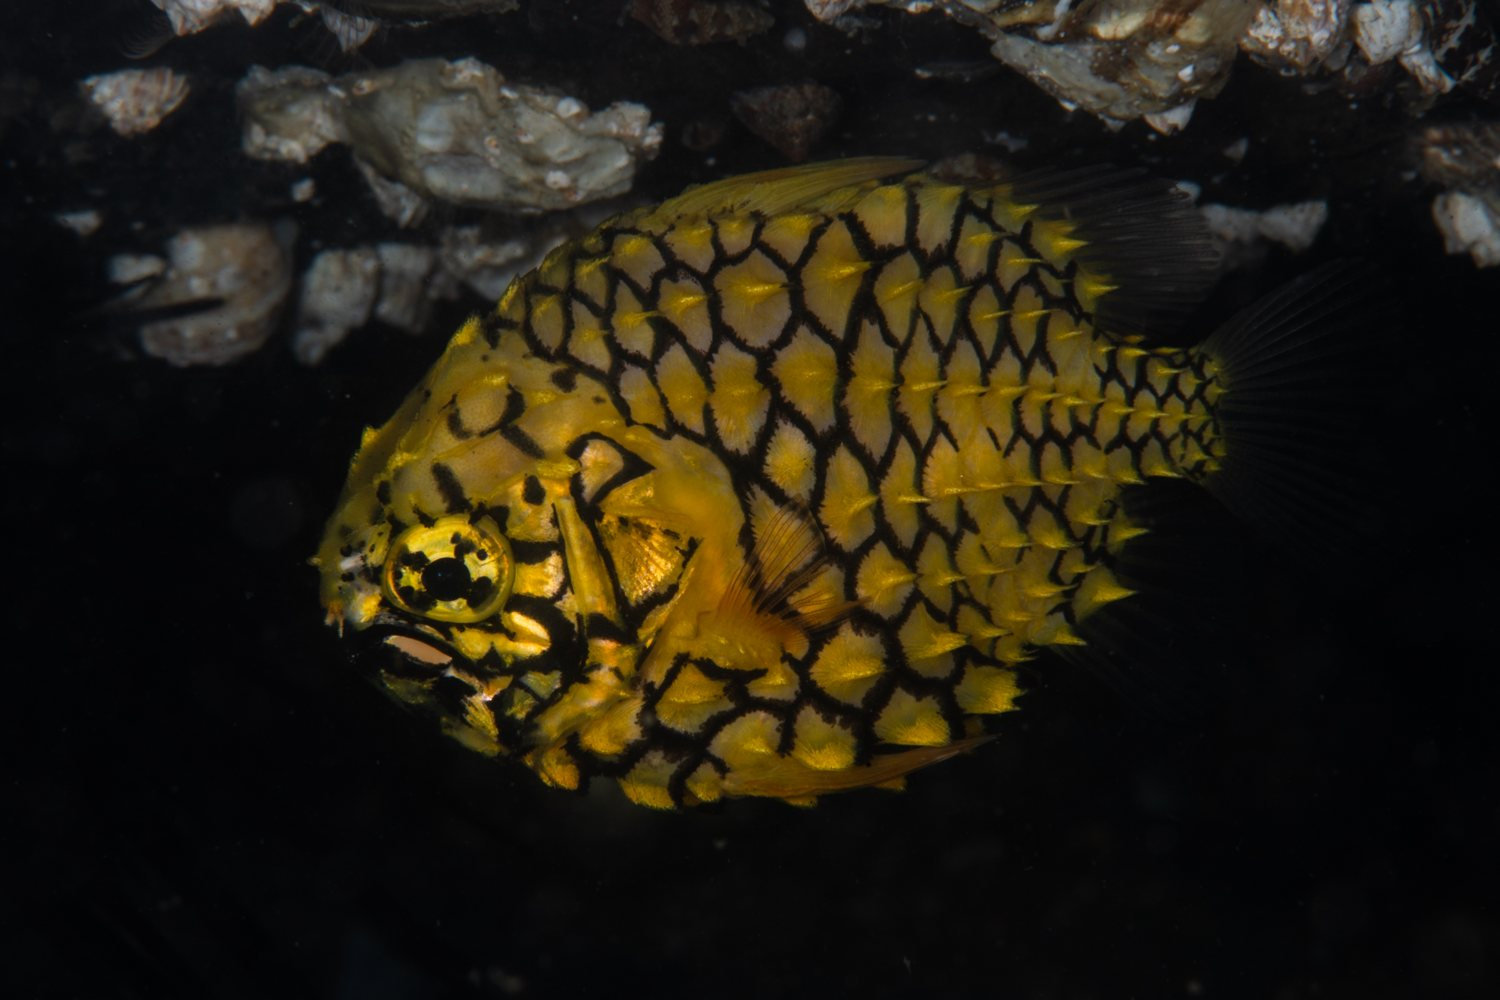 The Pineapple Fish. The Pineapple fish is easily recognised by its yellow coloured body with scale margins outlined in black forming a pattern similar to that of a pineapple. The scales are very tough, acting as armour.